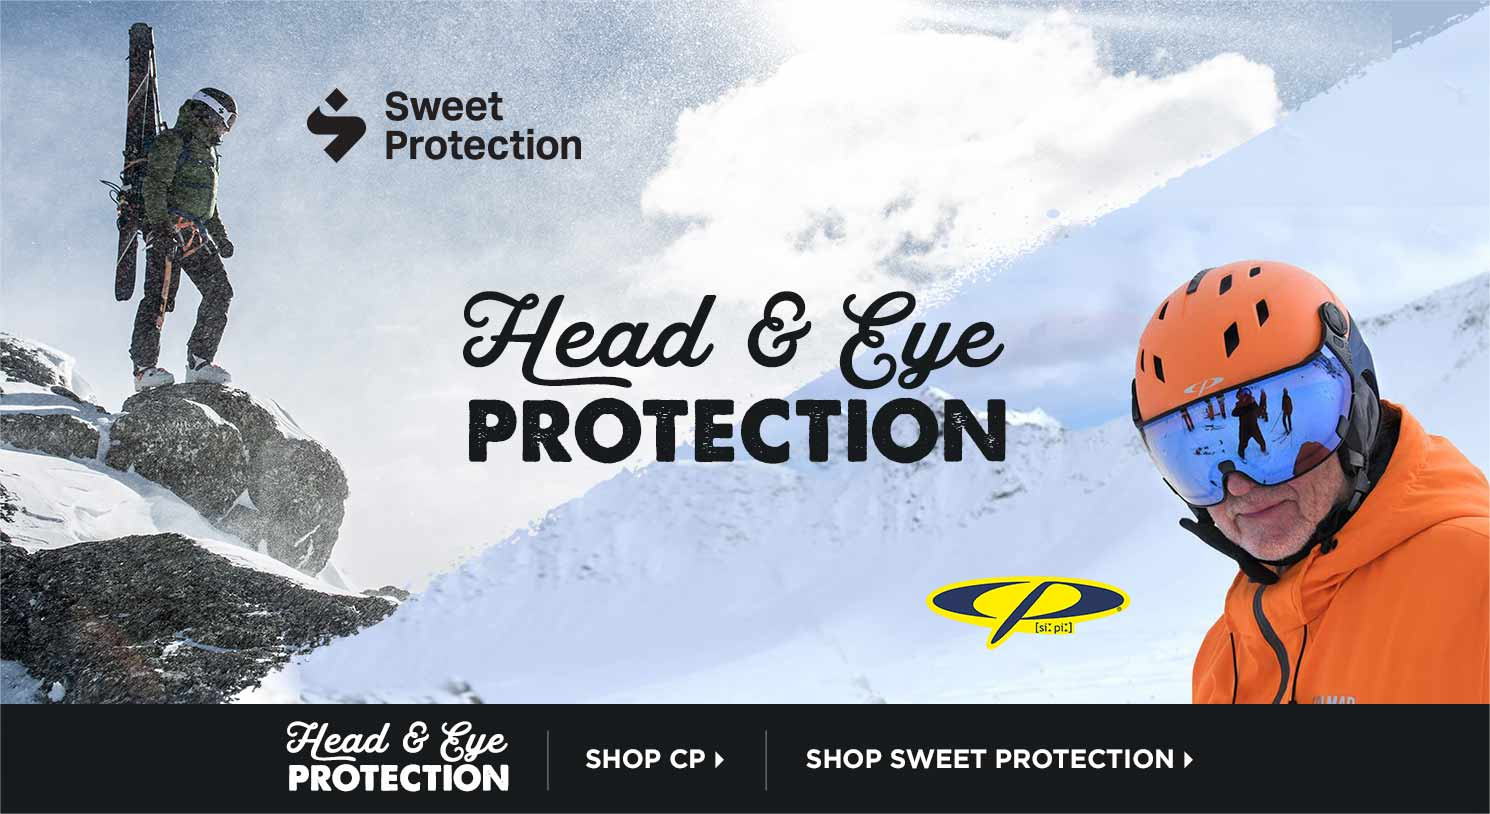 Head & Eye Protection